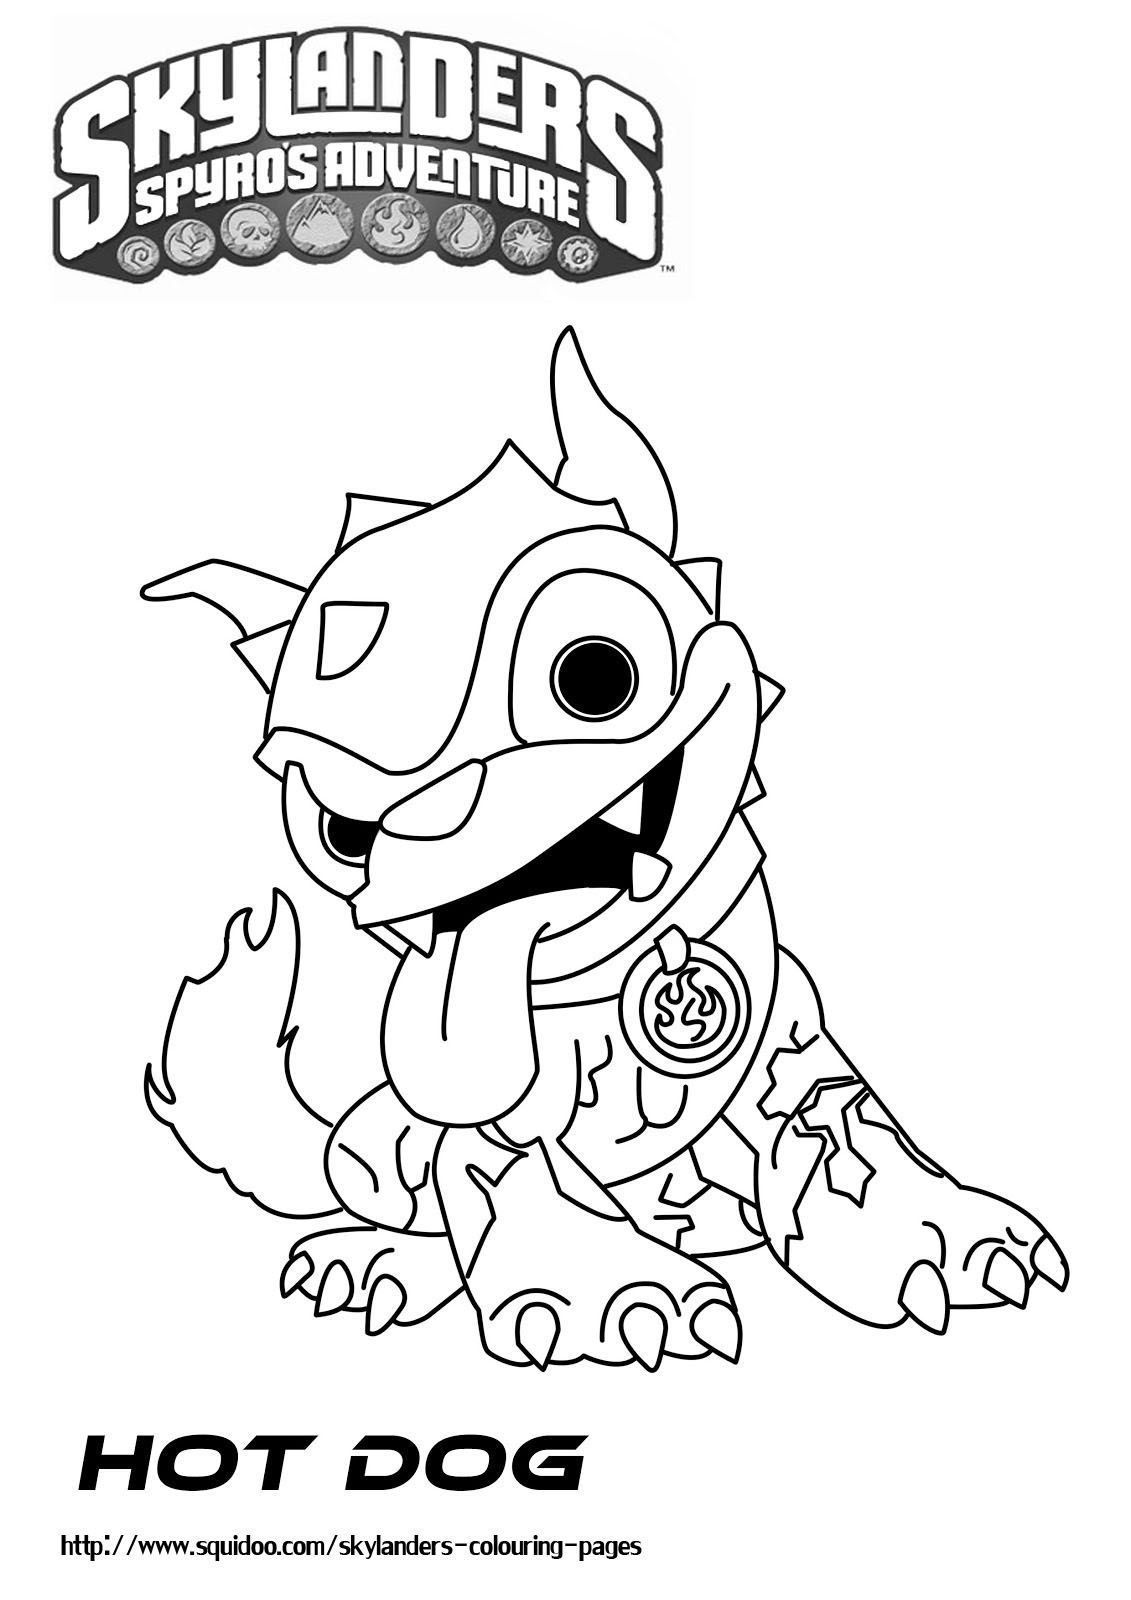 Skylanders Printable Coloring Pages